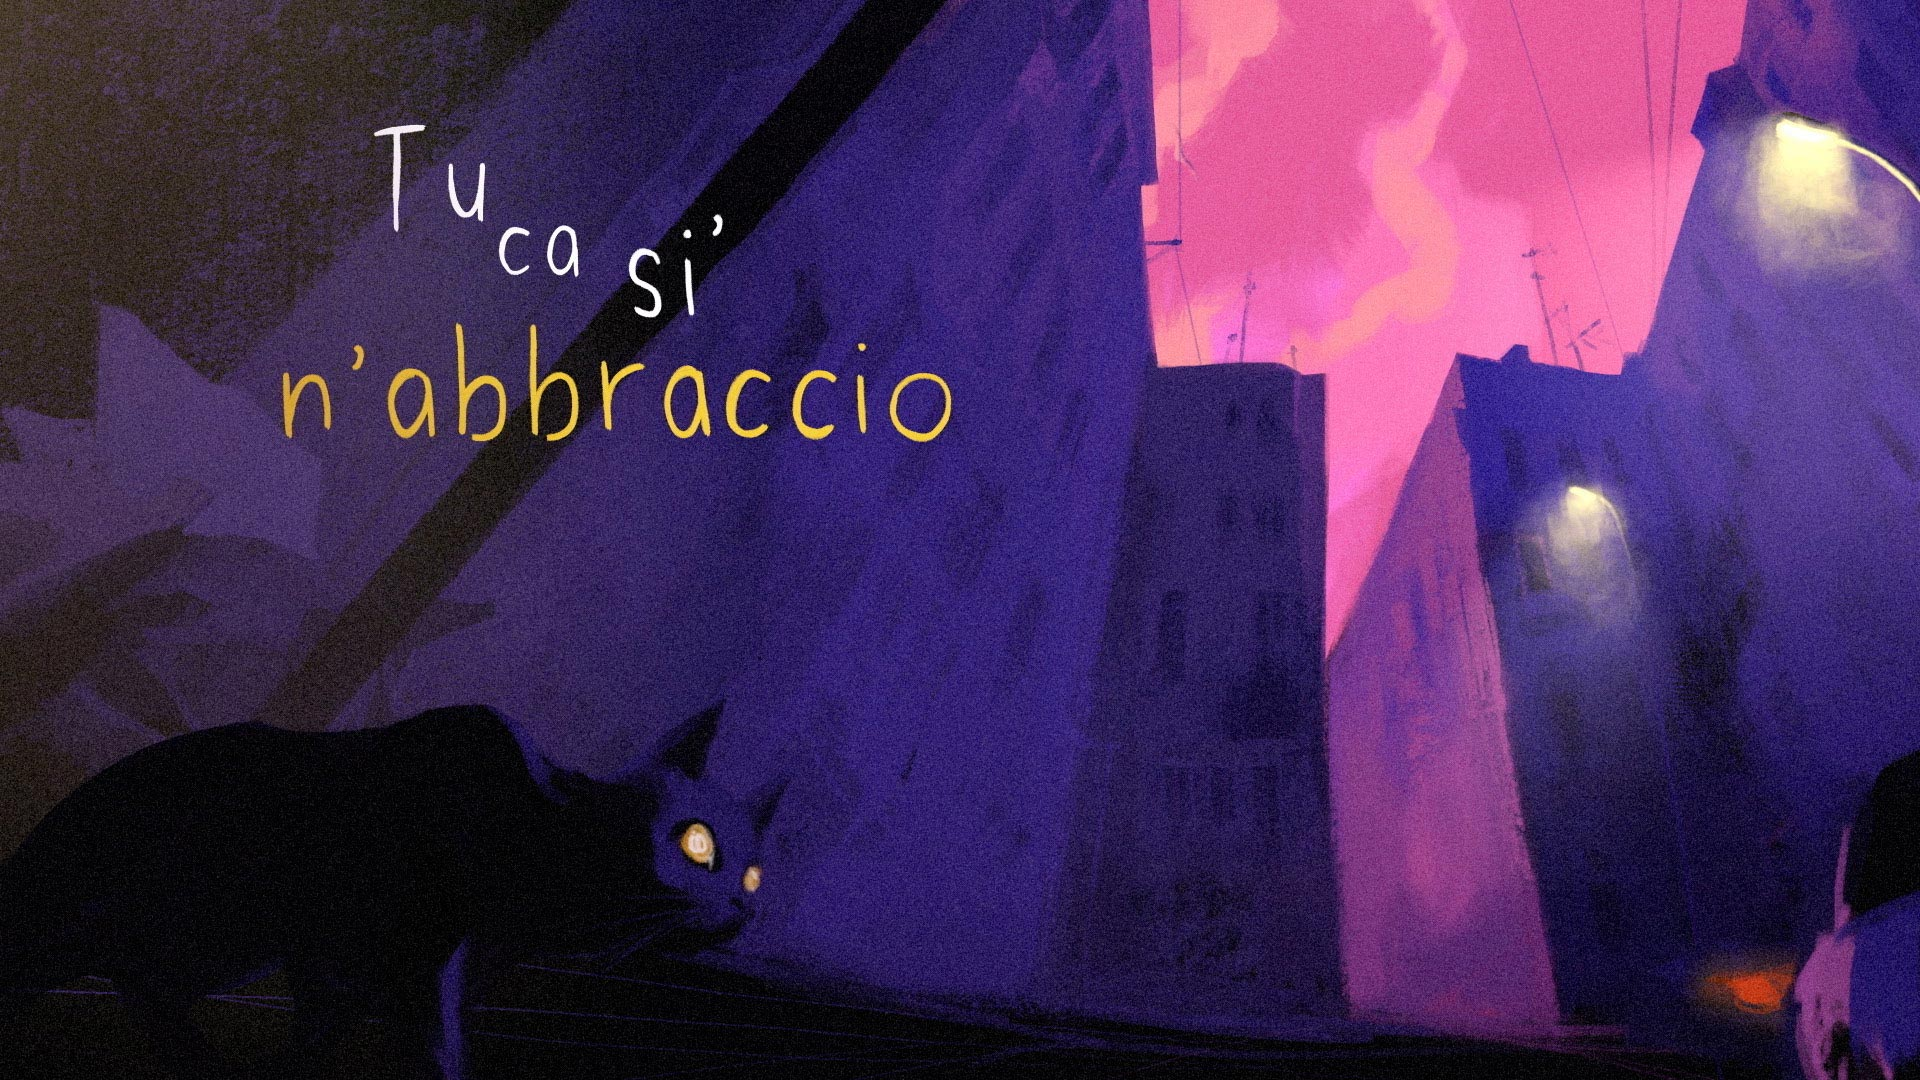 Neffa_lyric_video_animation_character_racoonstudio_motion_design_2